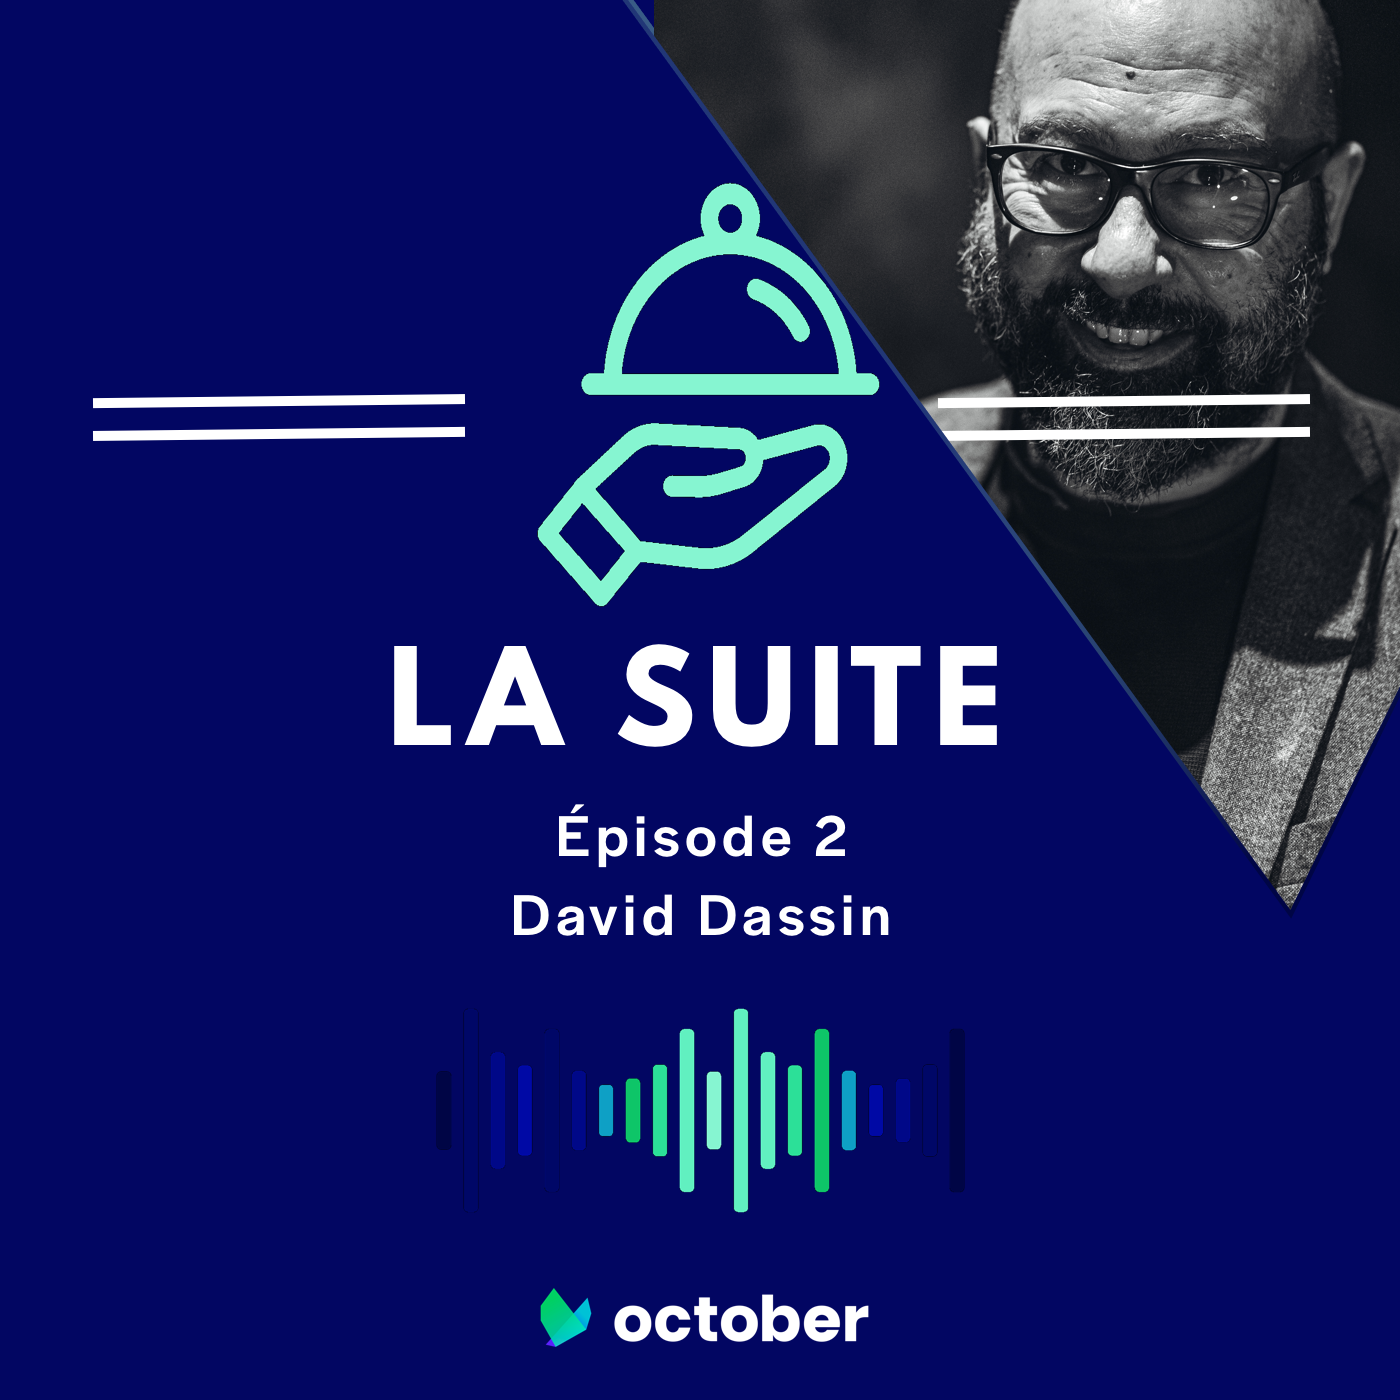 Episode 2 podcast la suite David Dassin